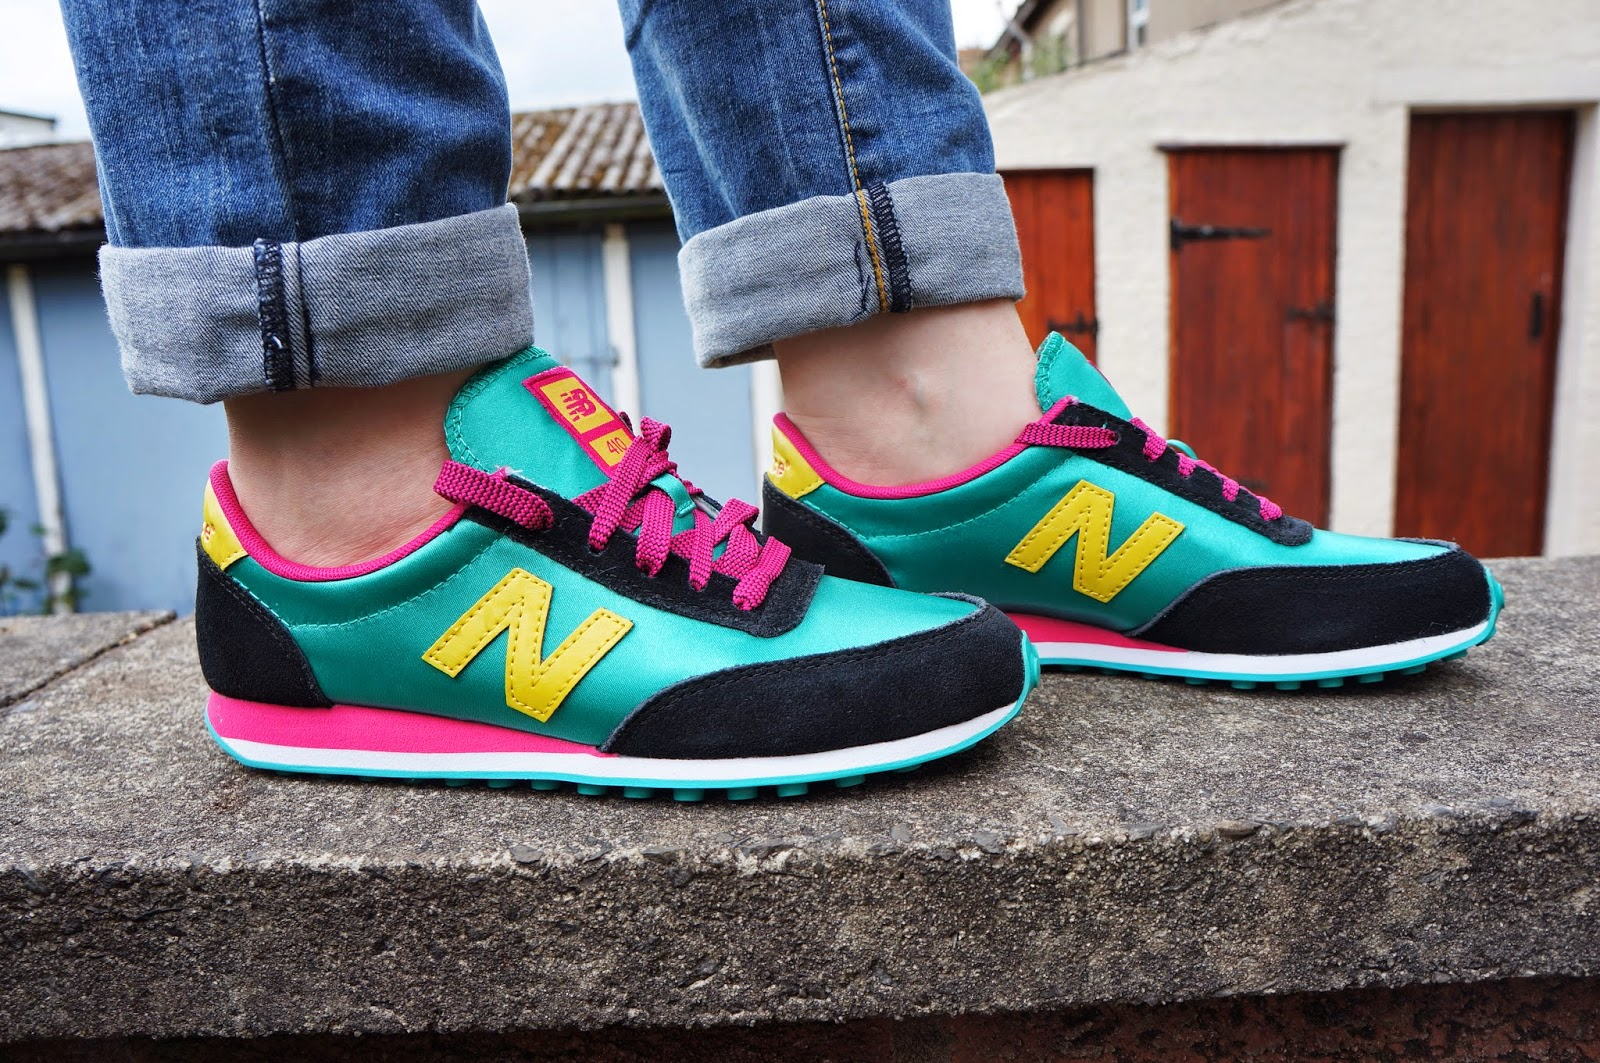 KENDAL CALLING :: PUT YOUR FEET TO THE TEST WITH NEW BALANCE